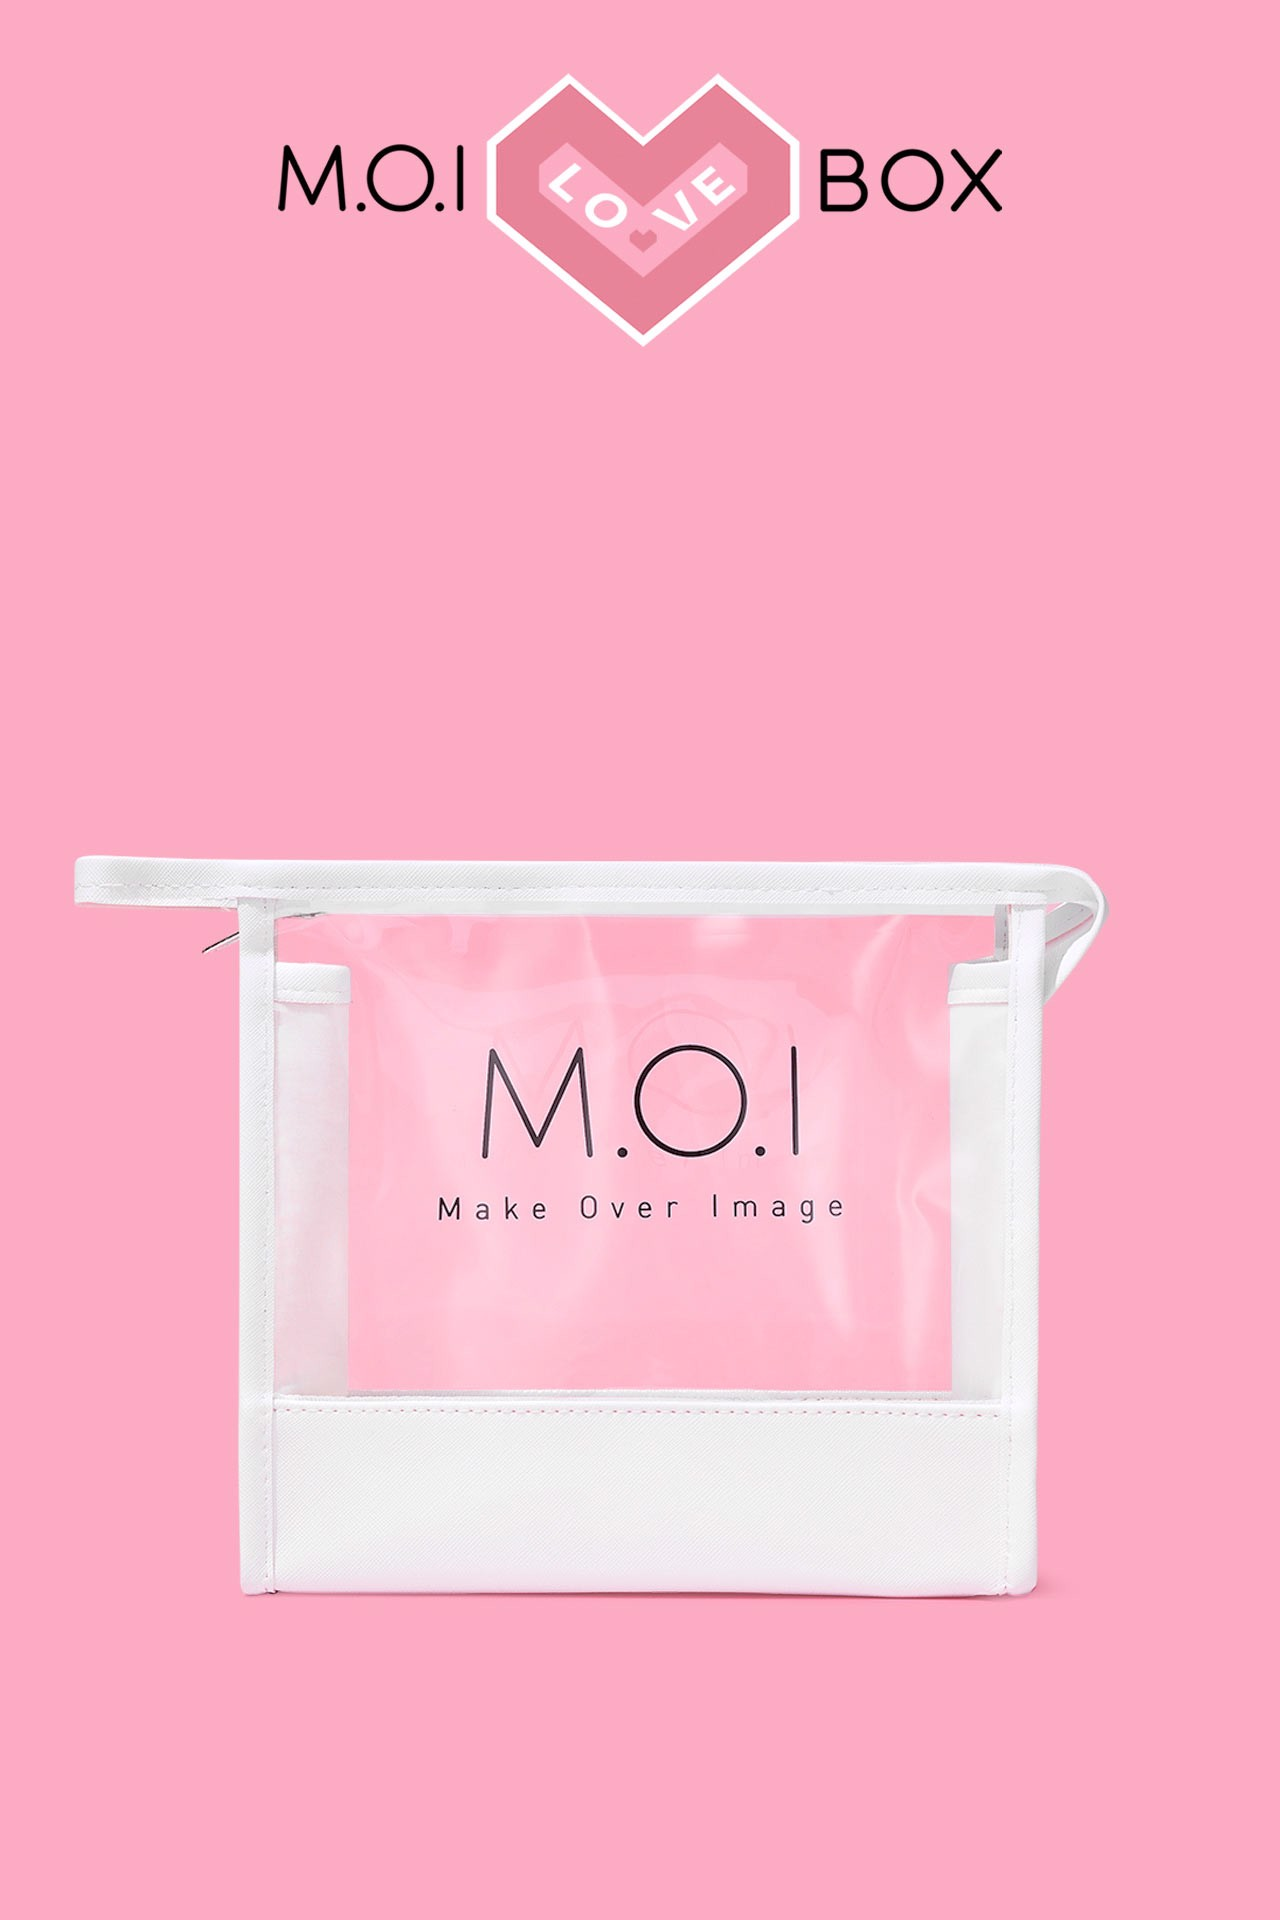 M.O.I LOVE BOX FROM HỒ NGỌC HÀ WITH LOVE